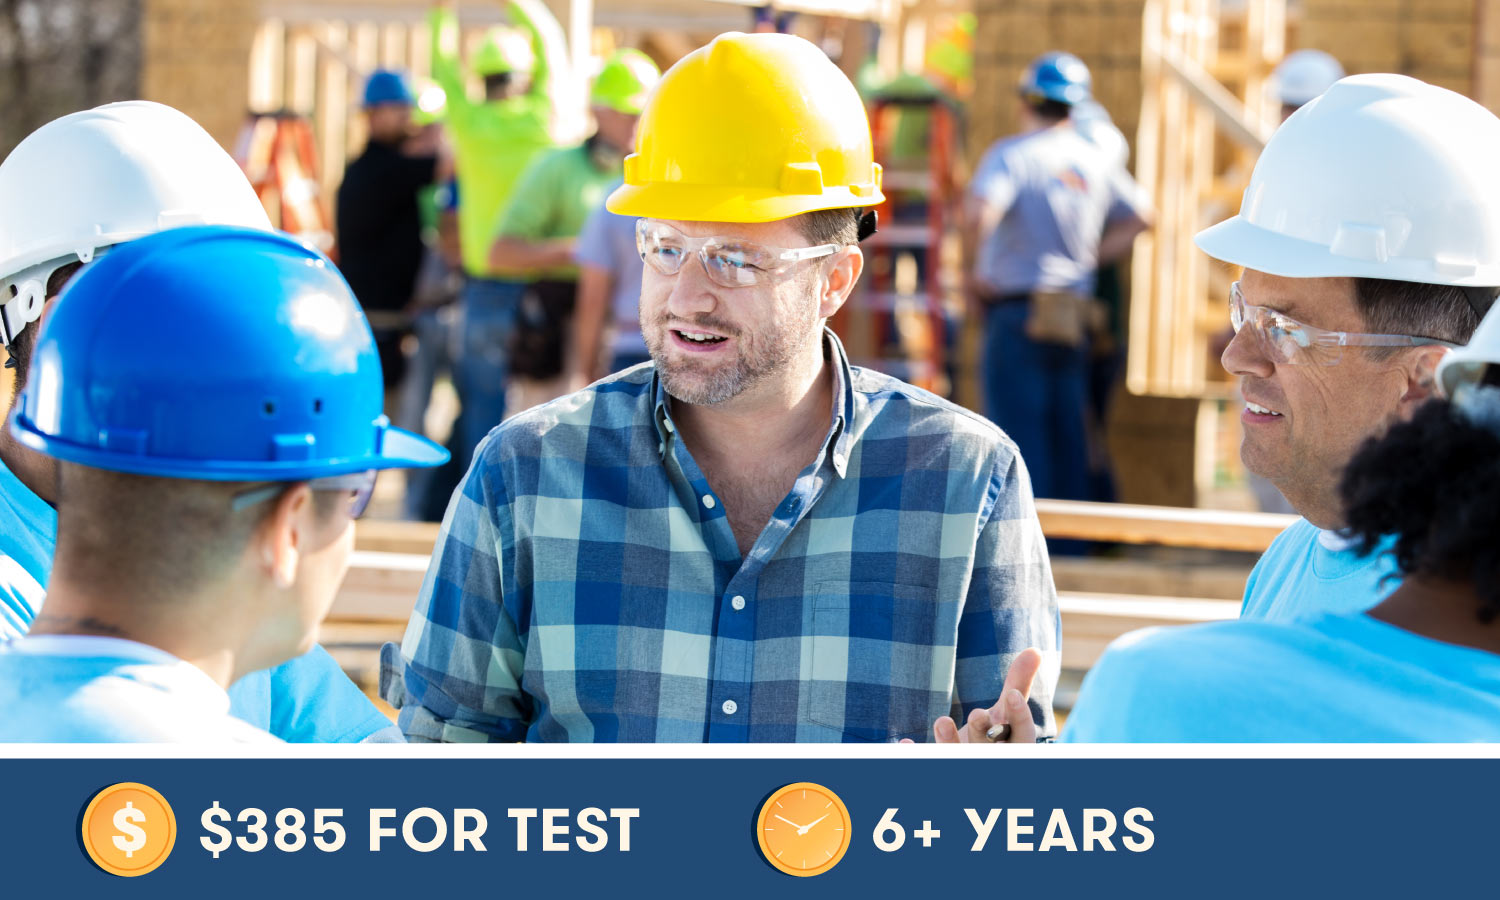 Construction Management Association of America—Certified Construction Manager (CCM) costs $385 for the test and 6+ years